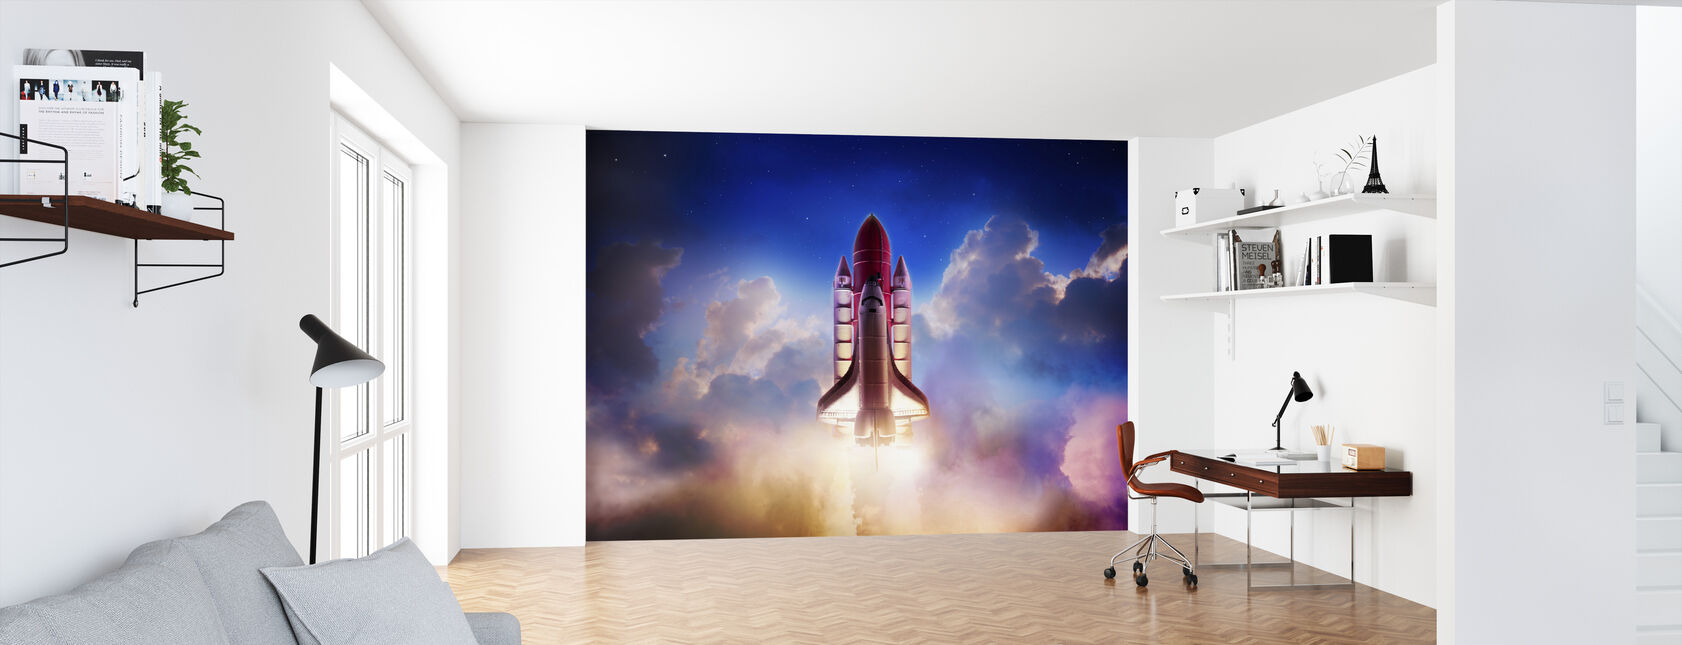 Thrust into Space - Wallpaper - Office